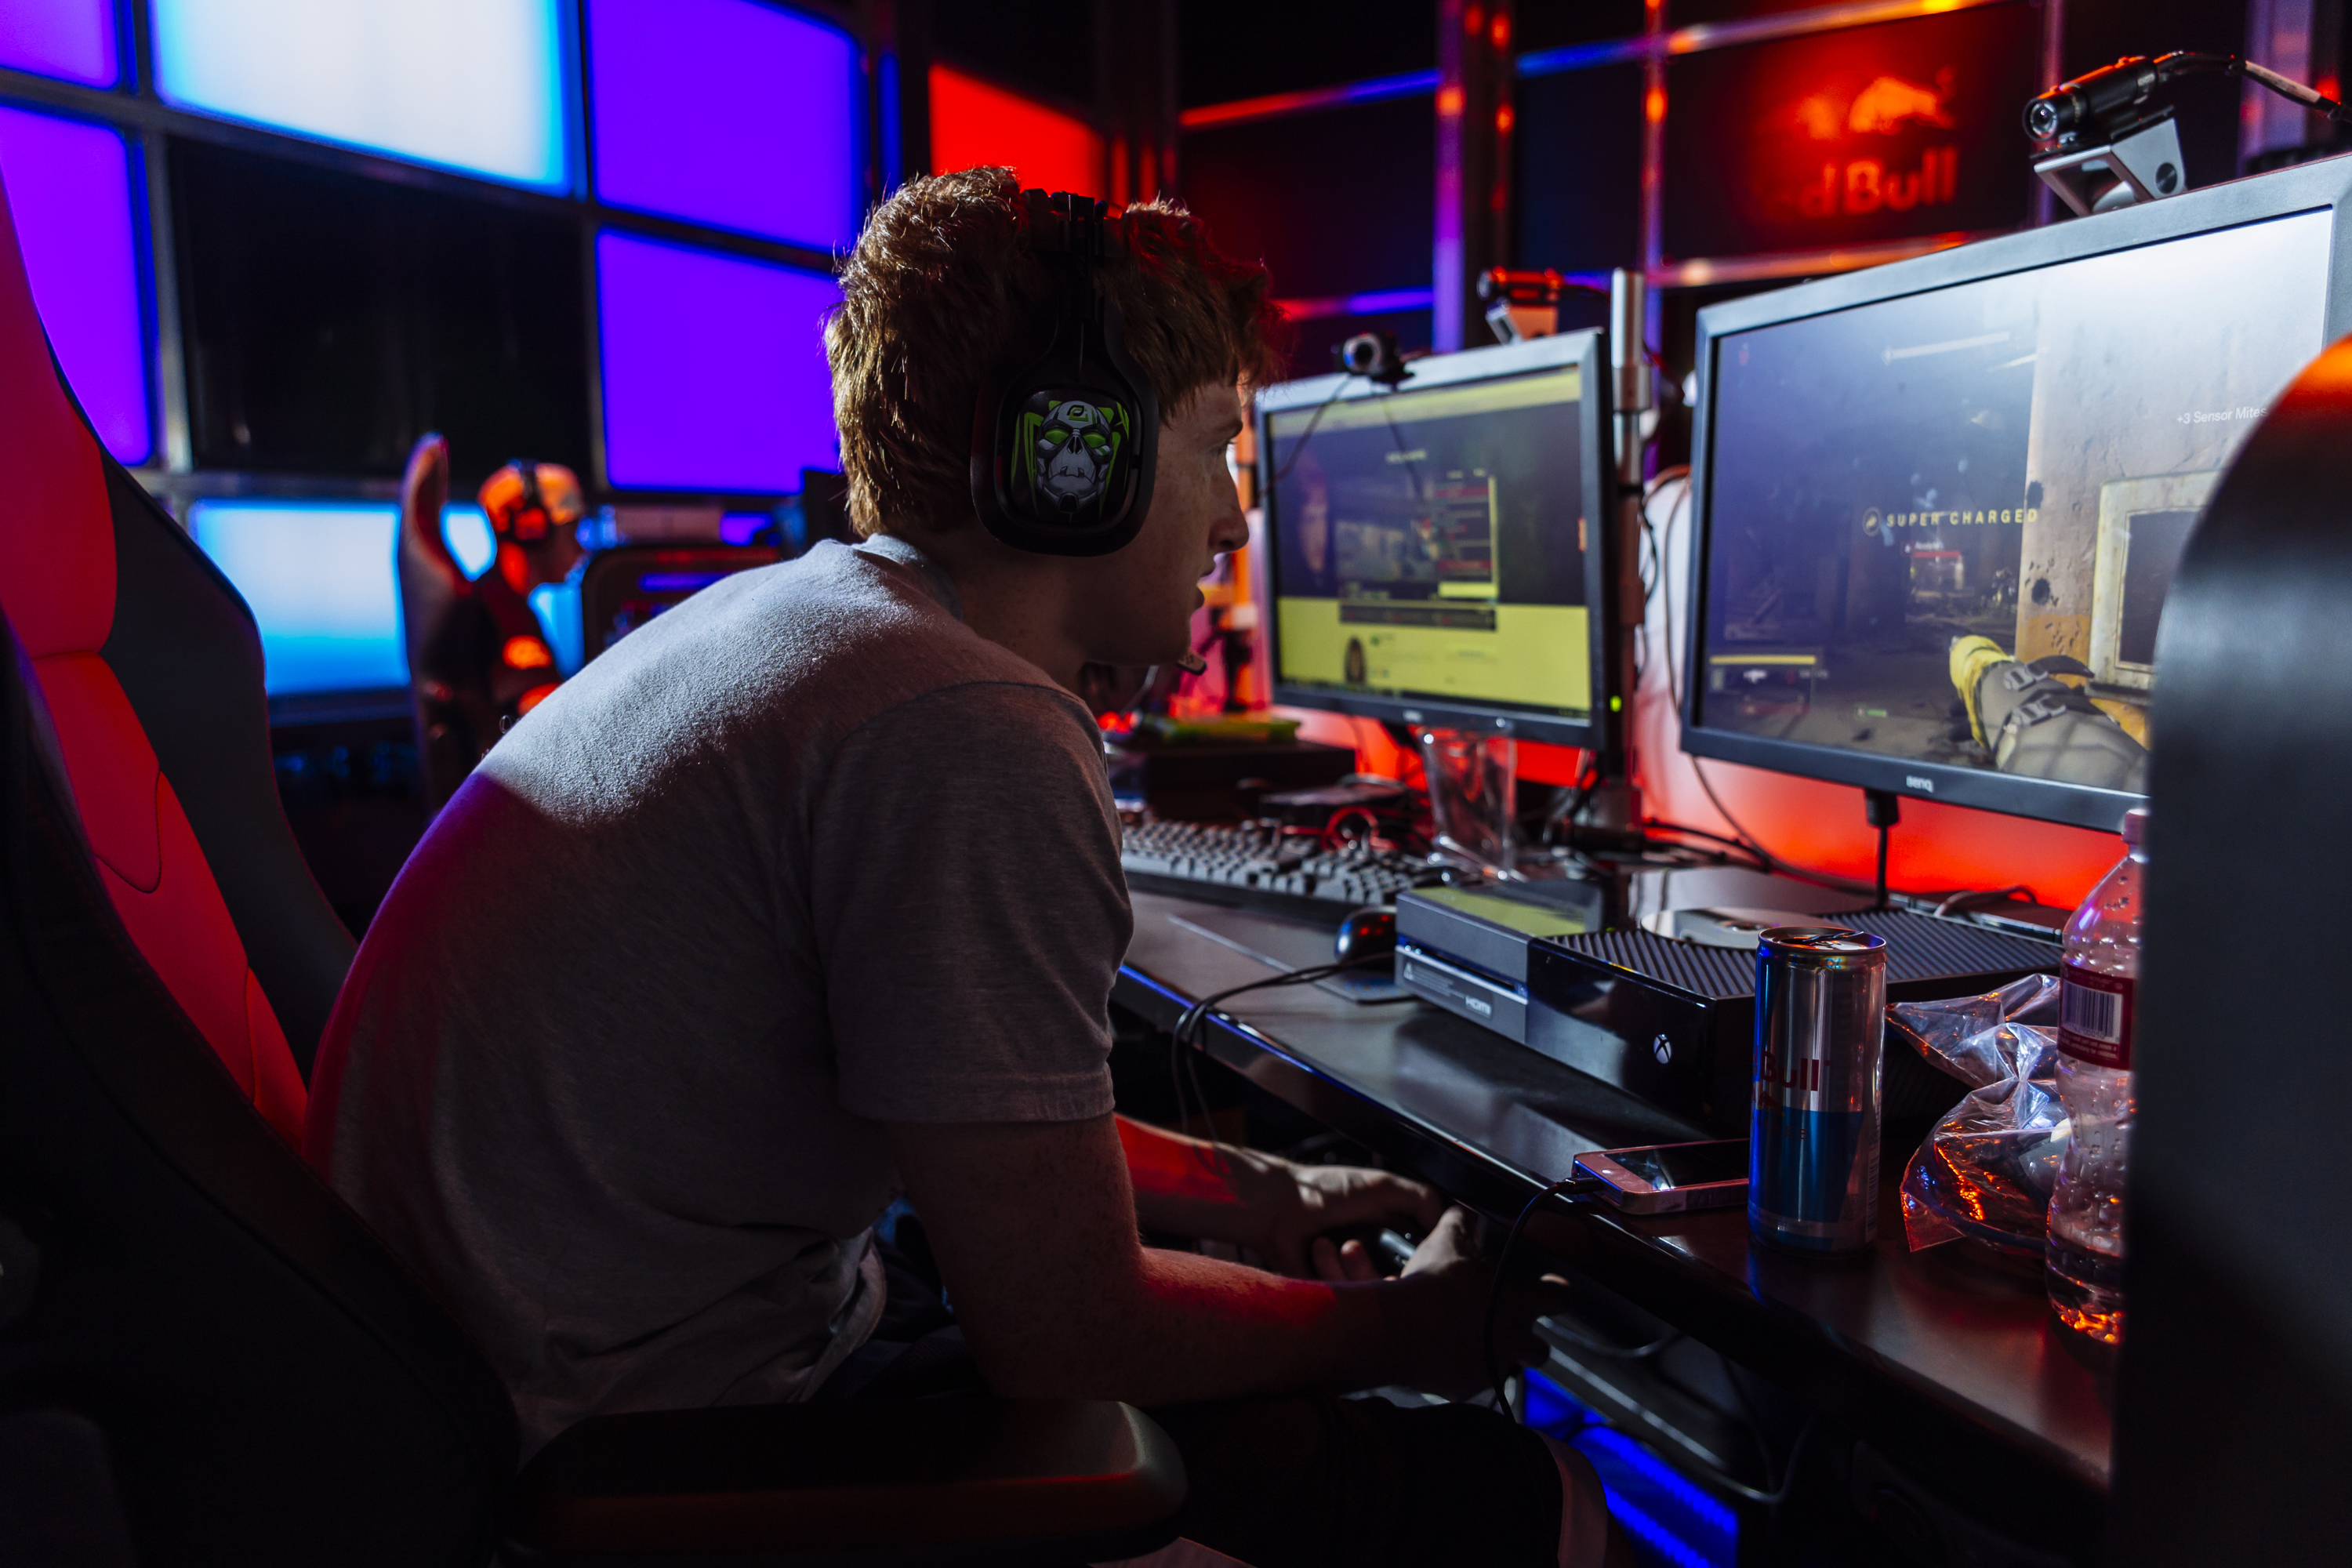 At the Red Bull High Performance eSports Lab in Santa Monica science and gaming collide.